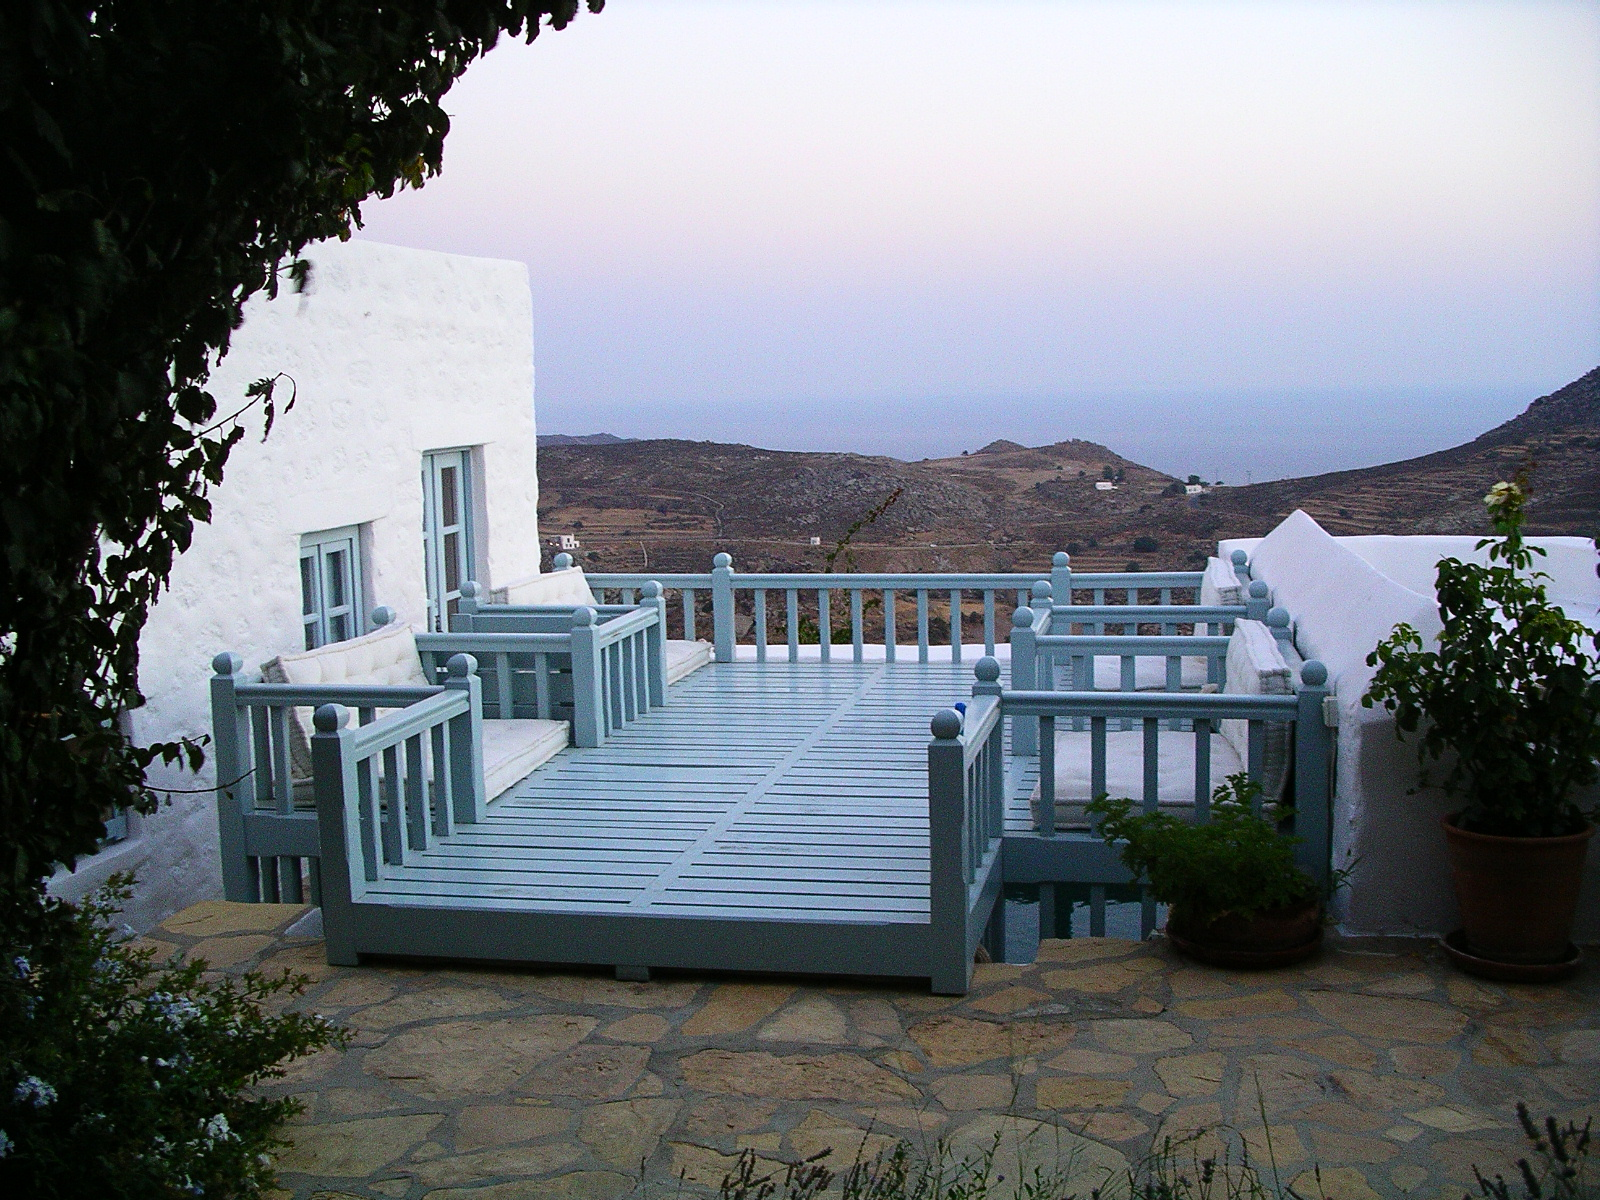 A HOUSE ON A GREEK ISLAND